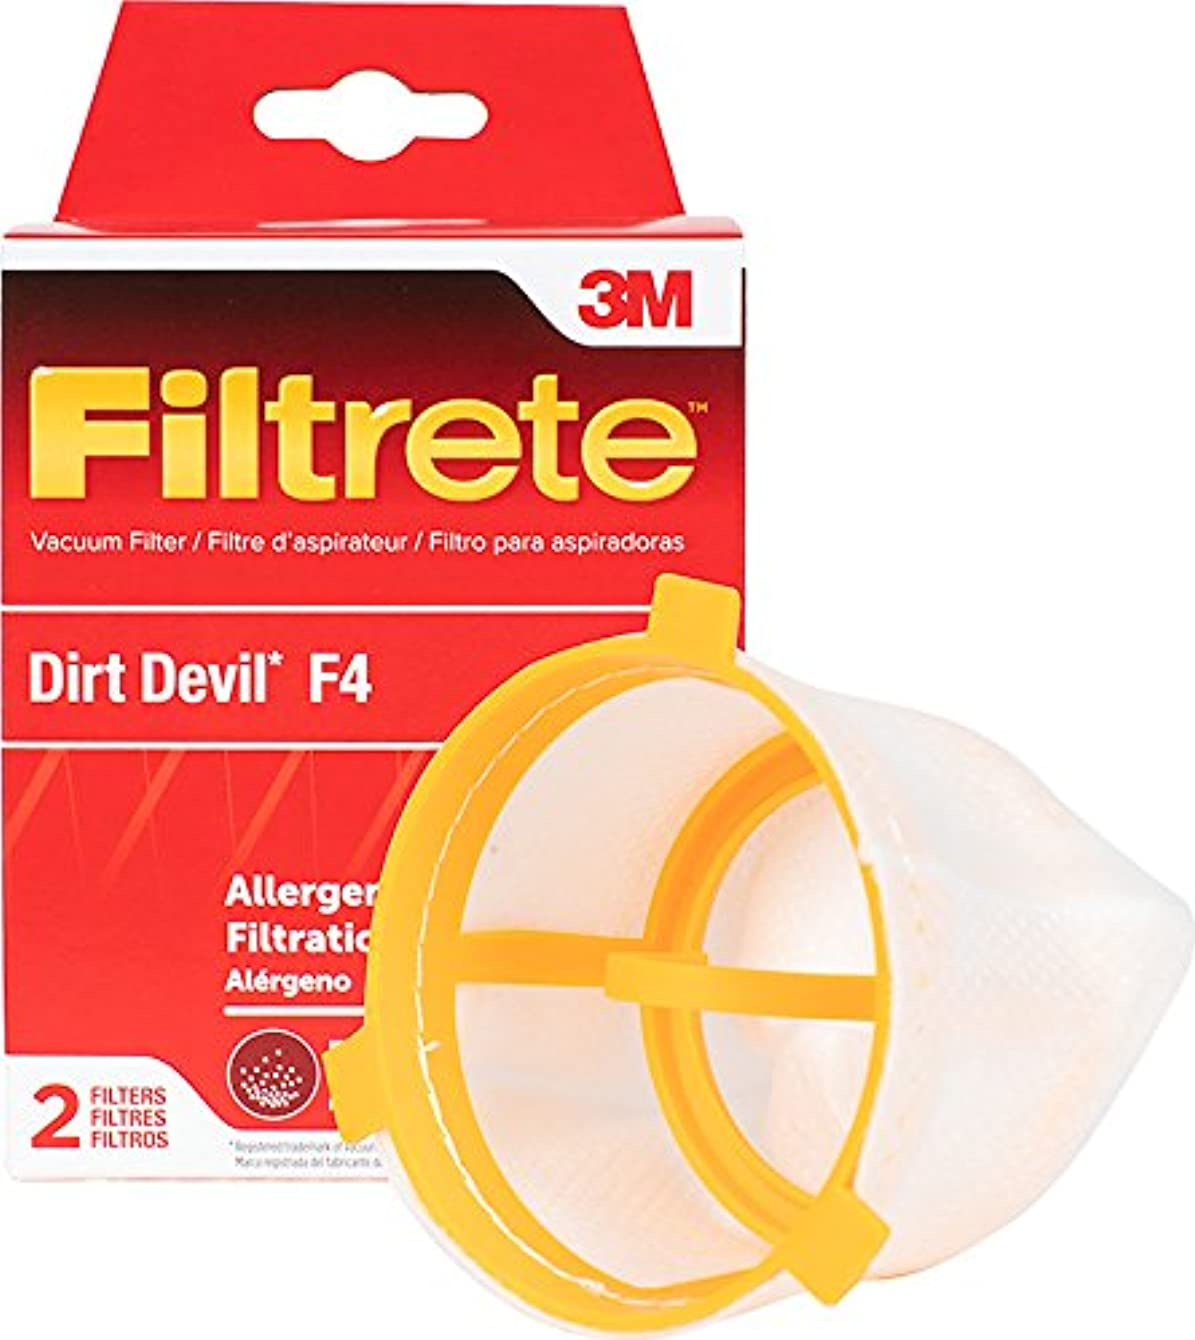 3M Filtrete Dirt Devil F4 Allergen Vacuum Filter